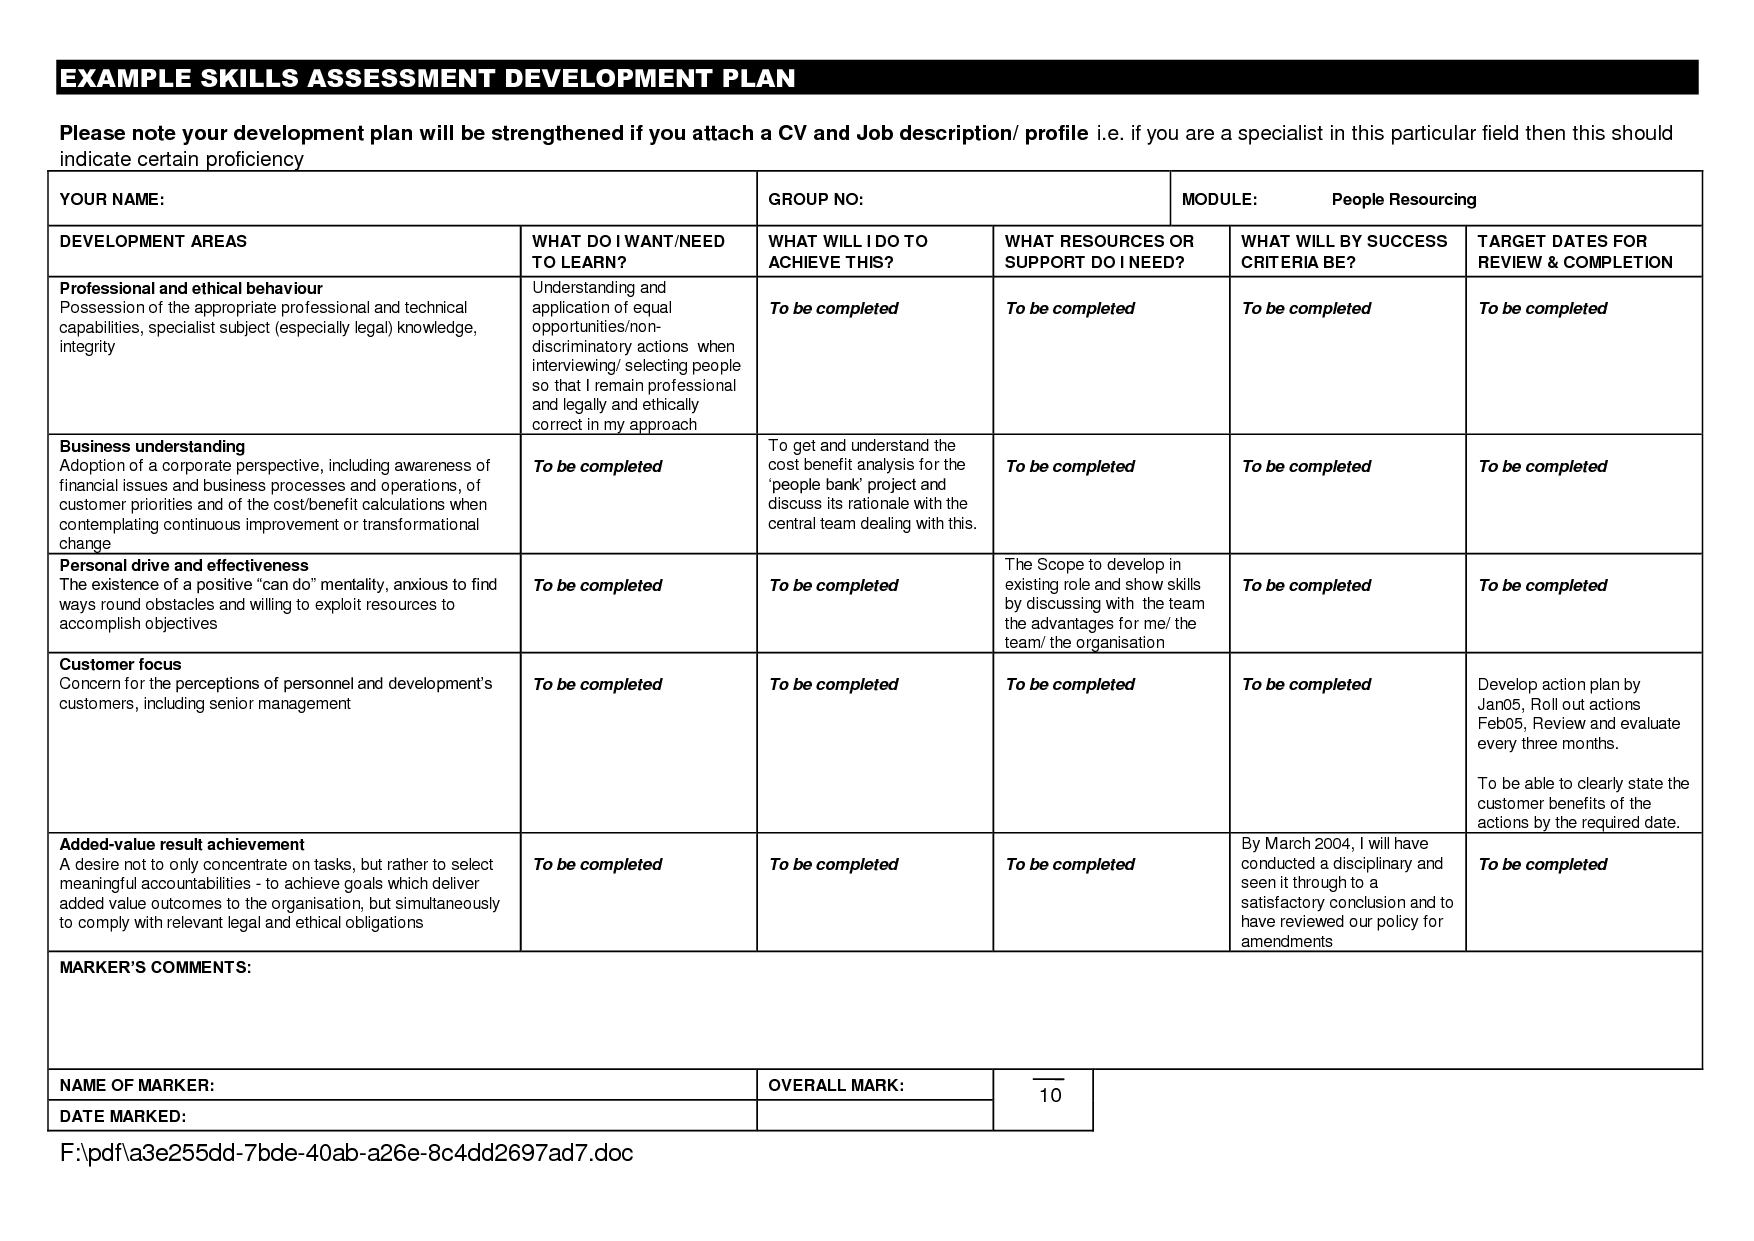 Personal development plan example for students google for Student improvement plan template